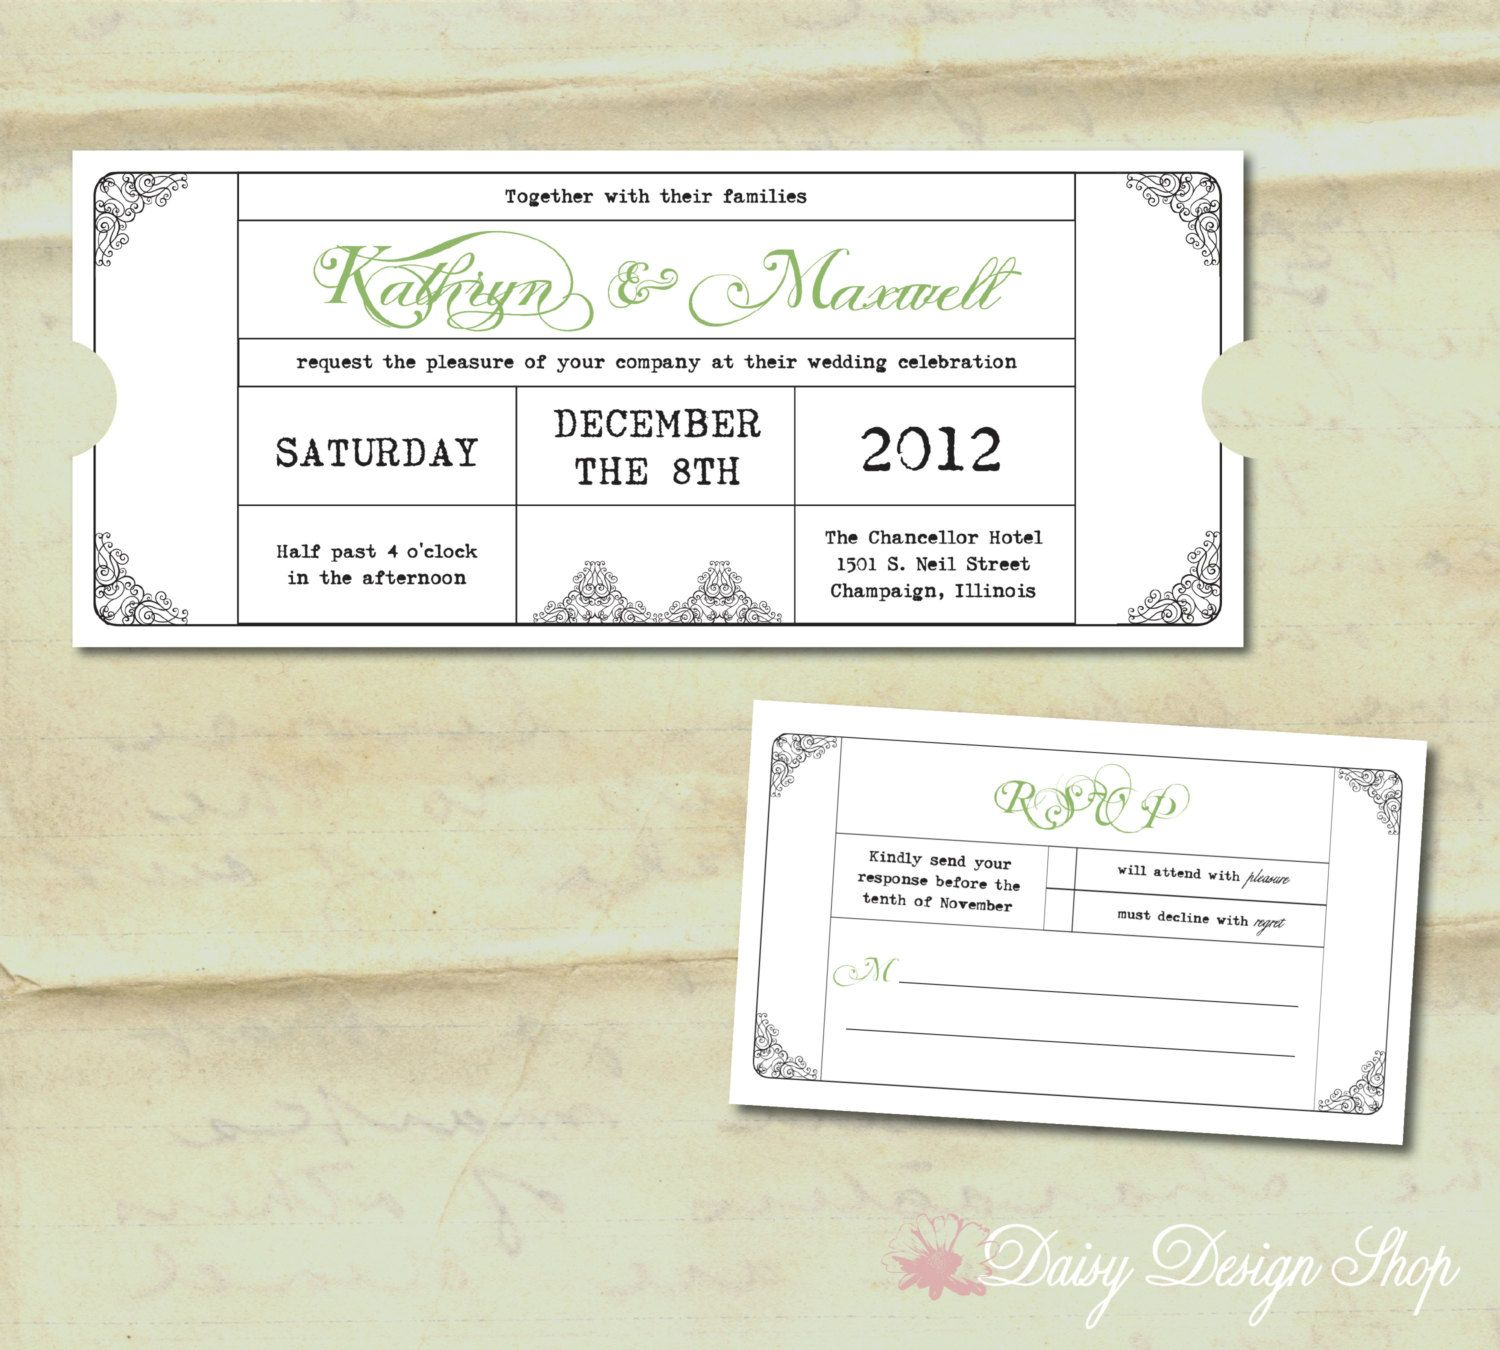 Wedding Invitation   Vintage Train Ticket   Invitation And RSVP Card With  Envelopes